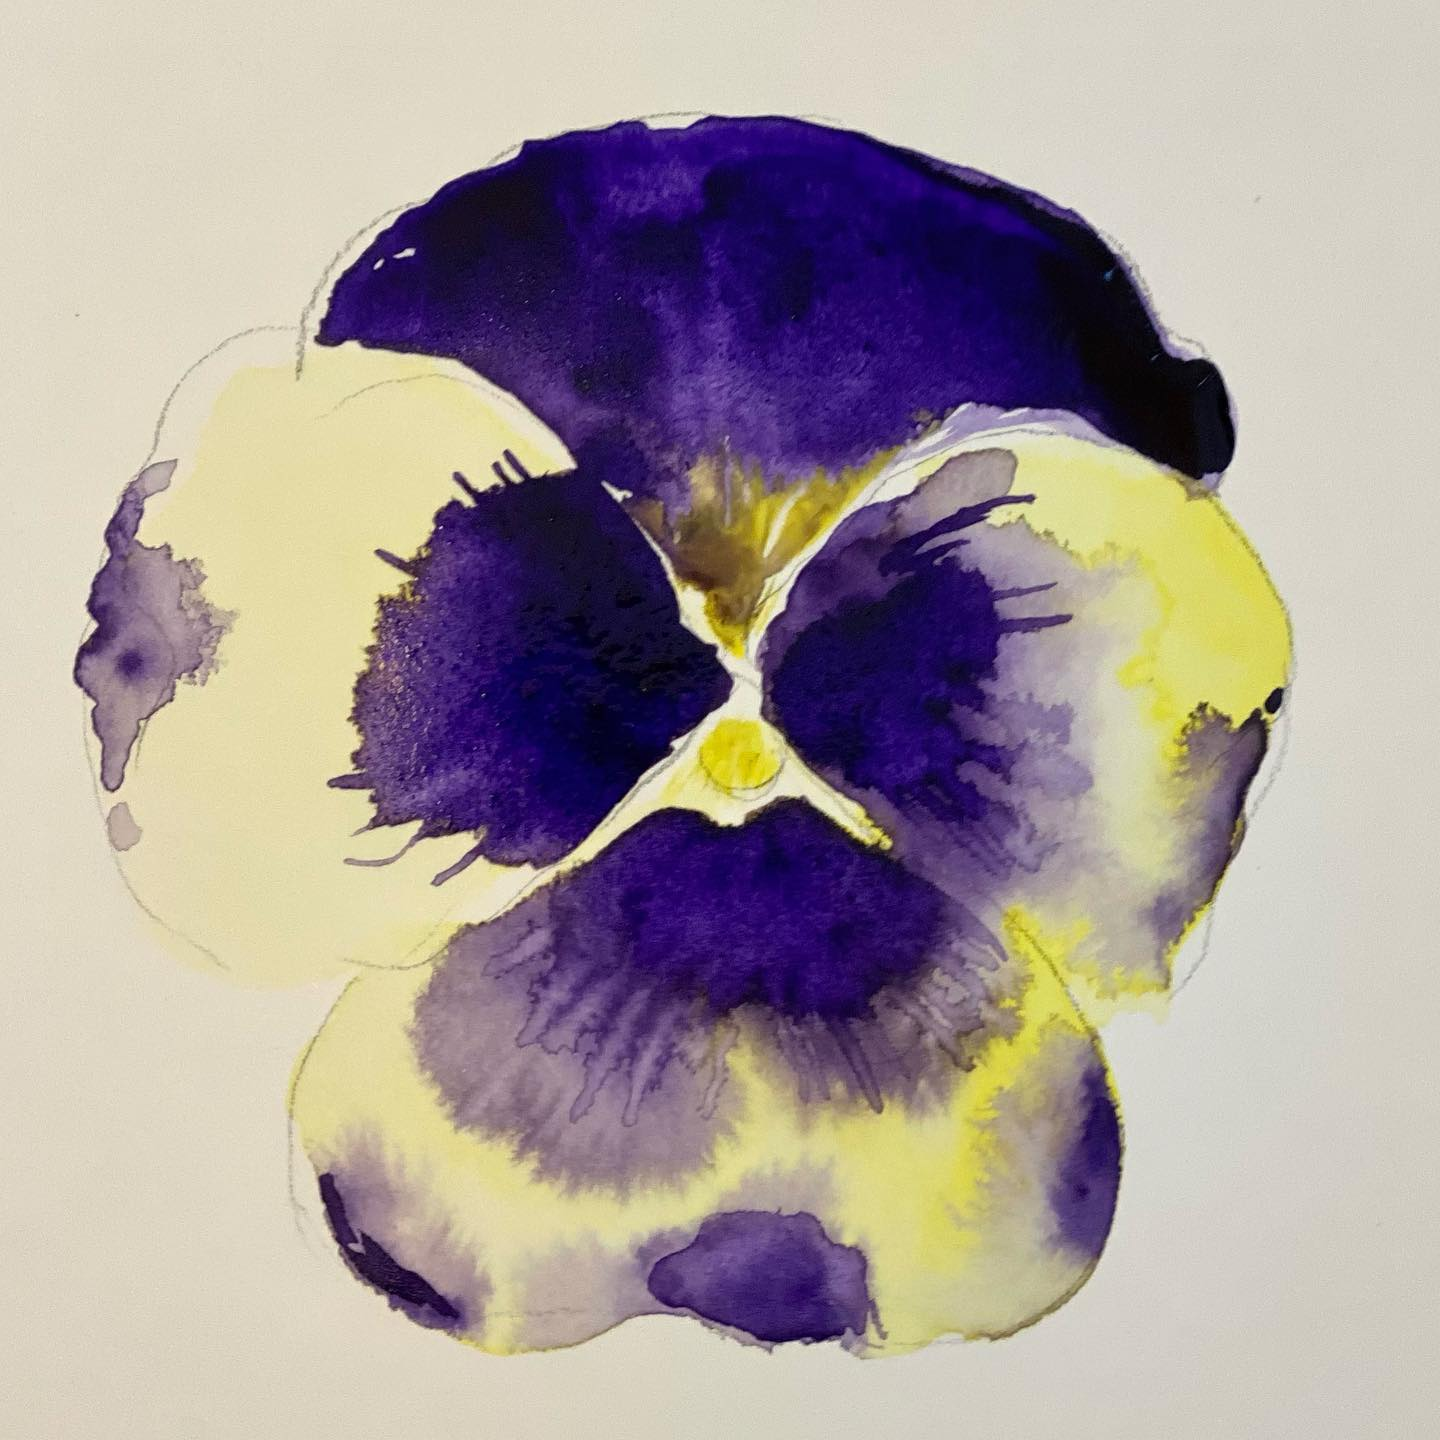 Pansy is often used as a get well flower. To all of you who are feeling under the weather hope this one brings you good healing vibes! Get well soon!